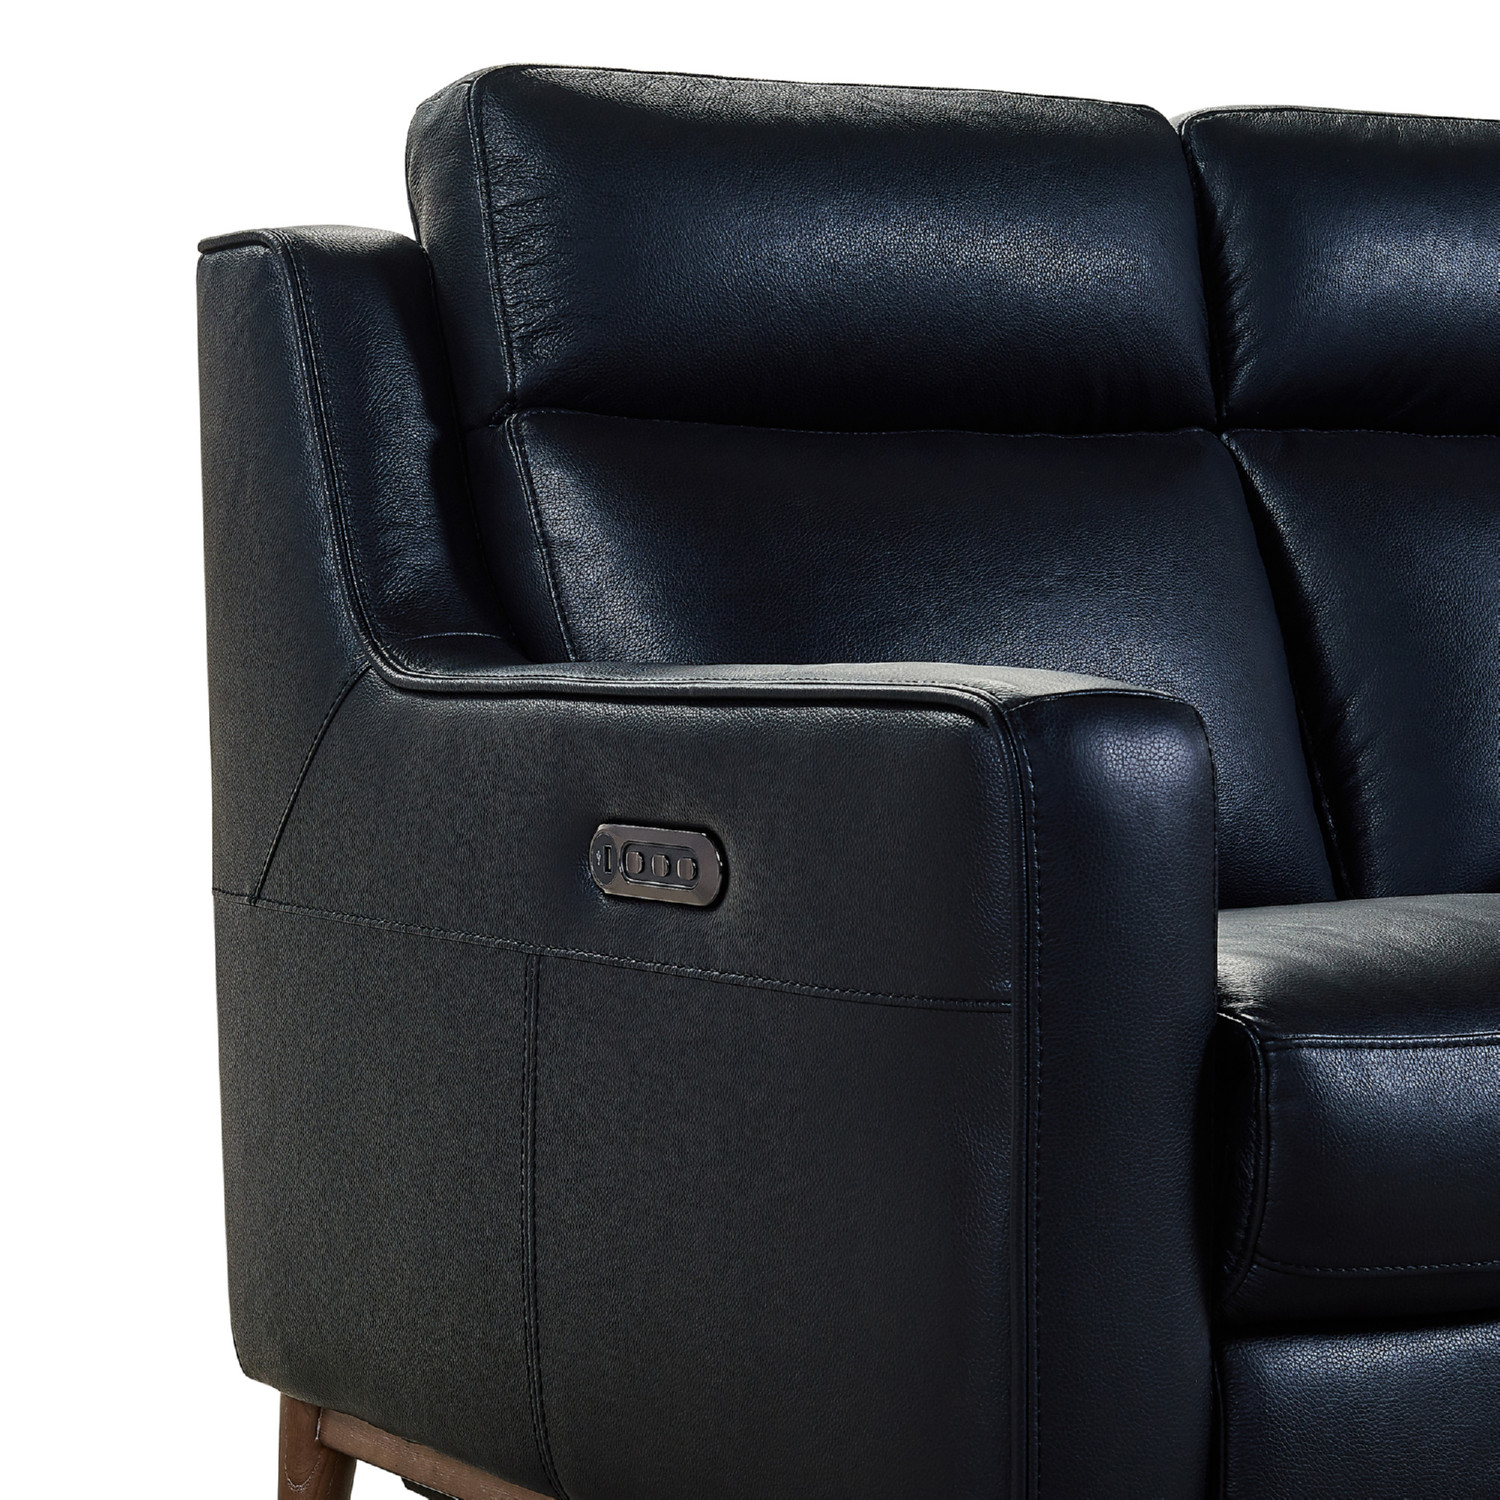 Incredible Wisteria Power Reclining Sofa In Black Leather Burlywood By Armen Living Machost Co Dining Chair Design Ideas Machostcouk